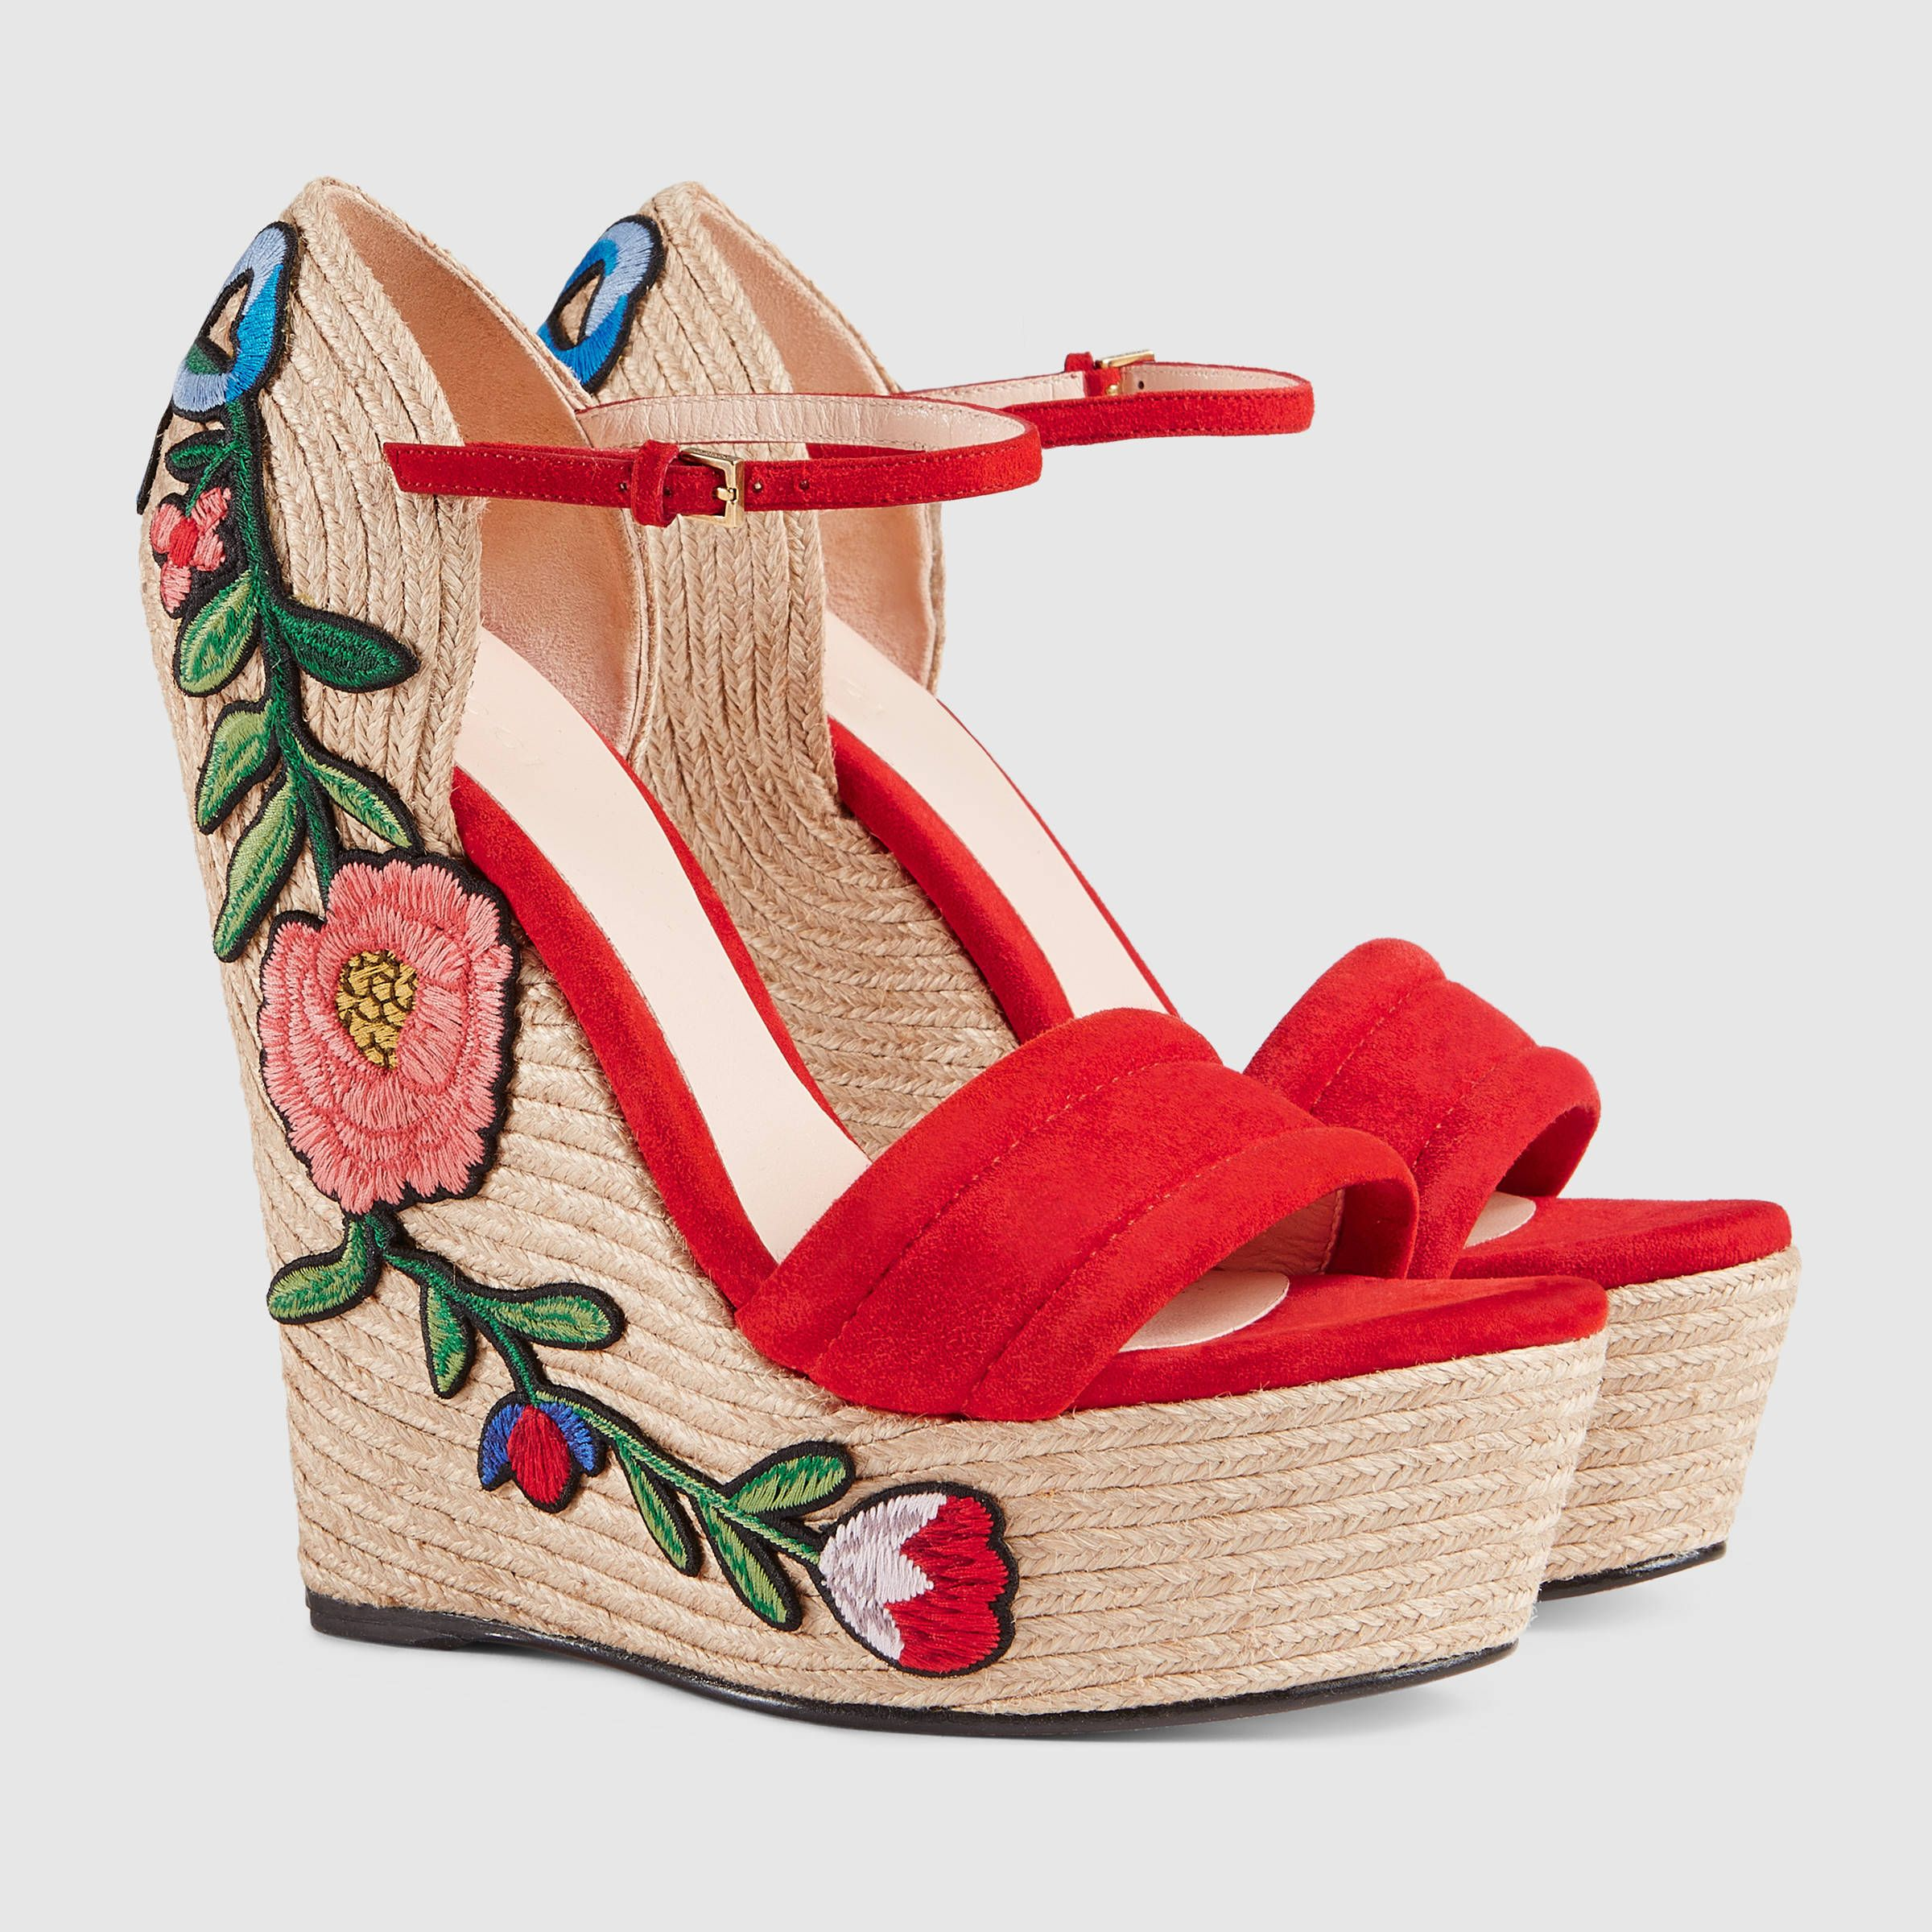 c162b649a6f Embroidered suede platform espadrille - Gucci Women s Sandals  454303C20006433